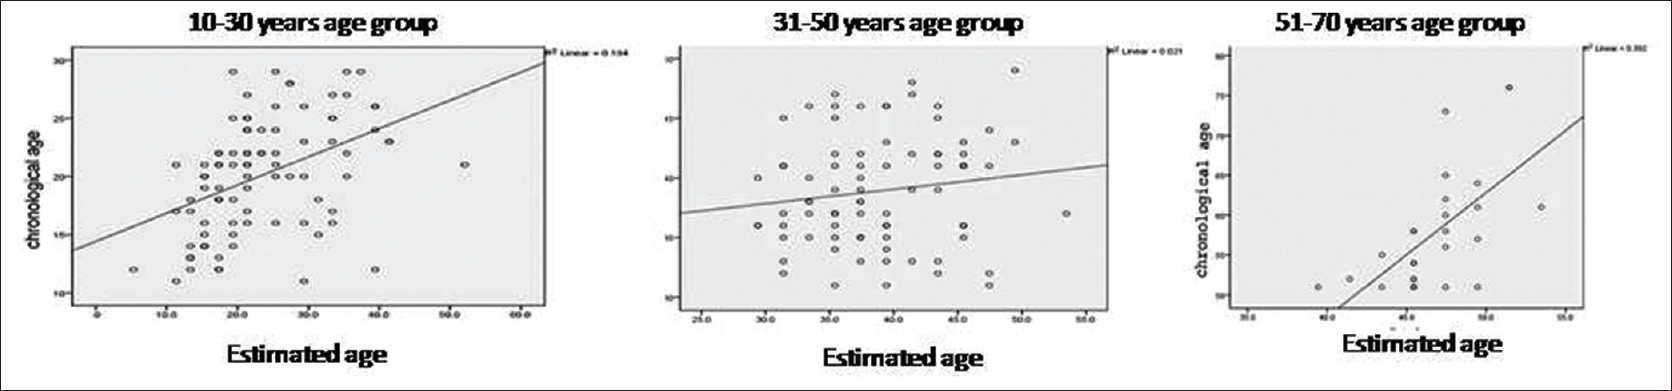 Figure 6: Scattered Plot comparing Chronological Age and Estimated Age in Different Age Groups